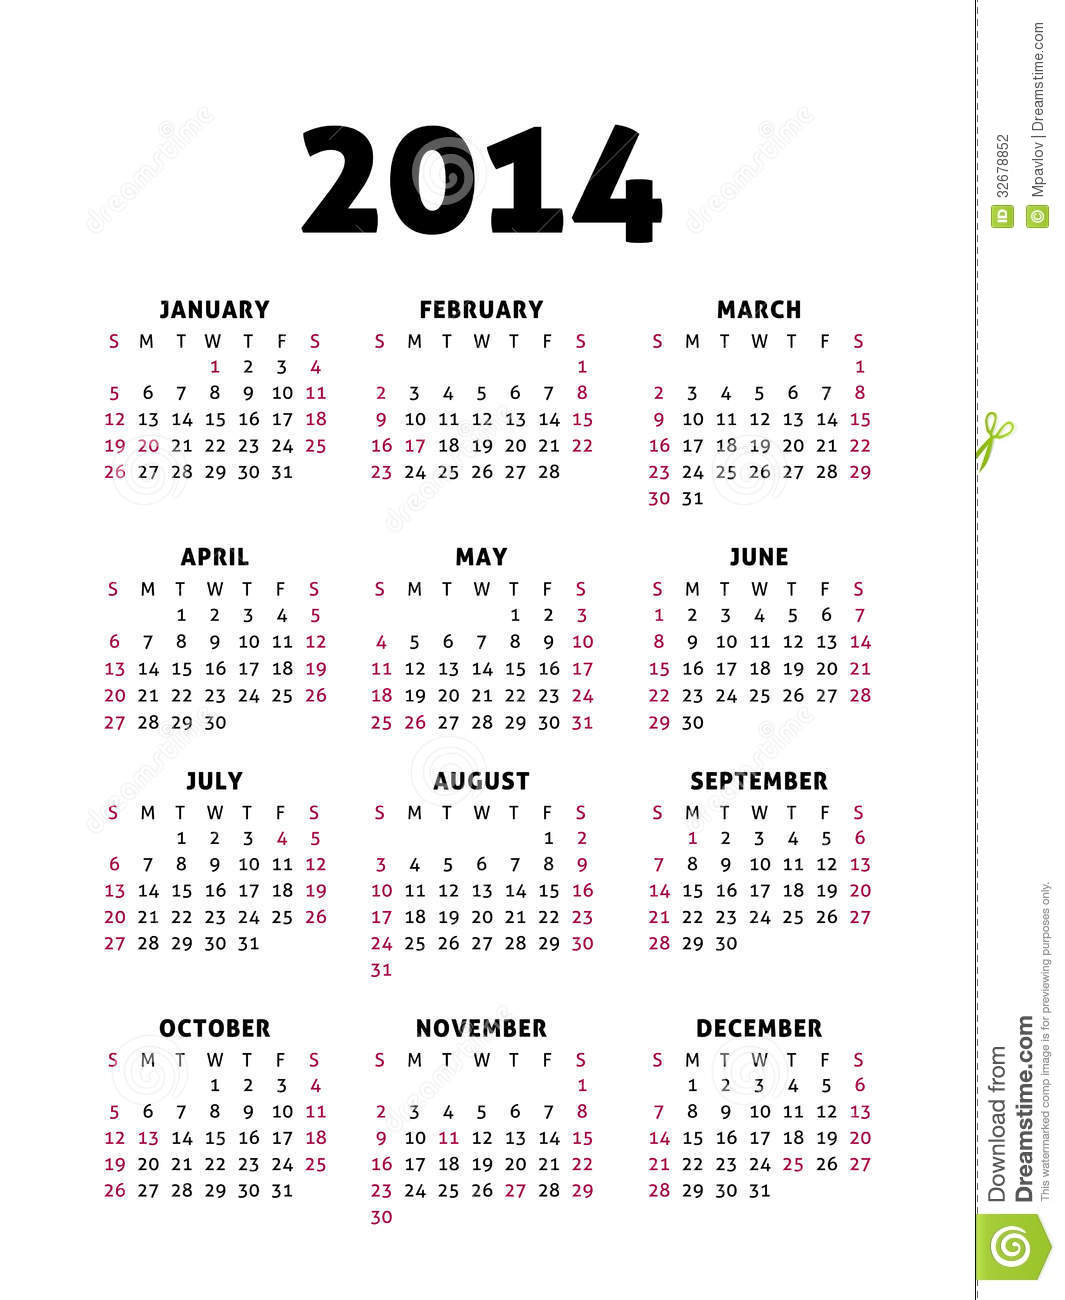 August 2014 Cpo Offers Table Jpg: Simple 2014 Calendar Stock Photography